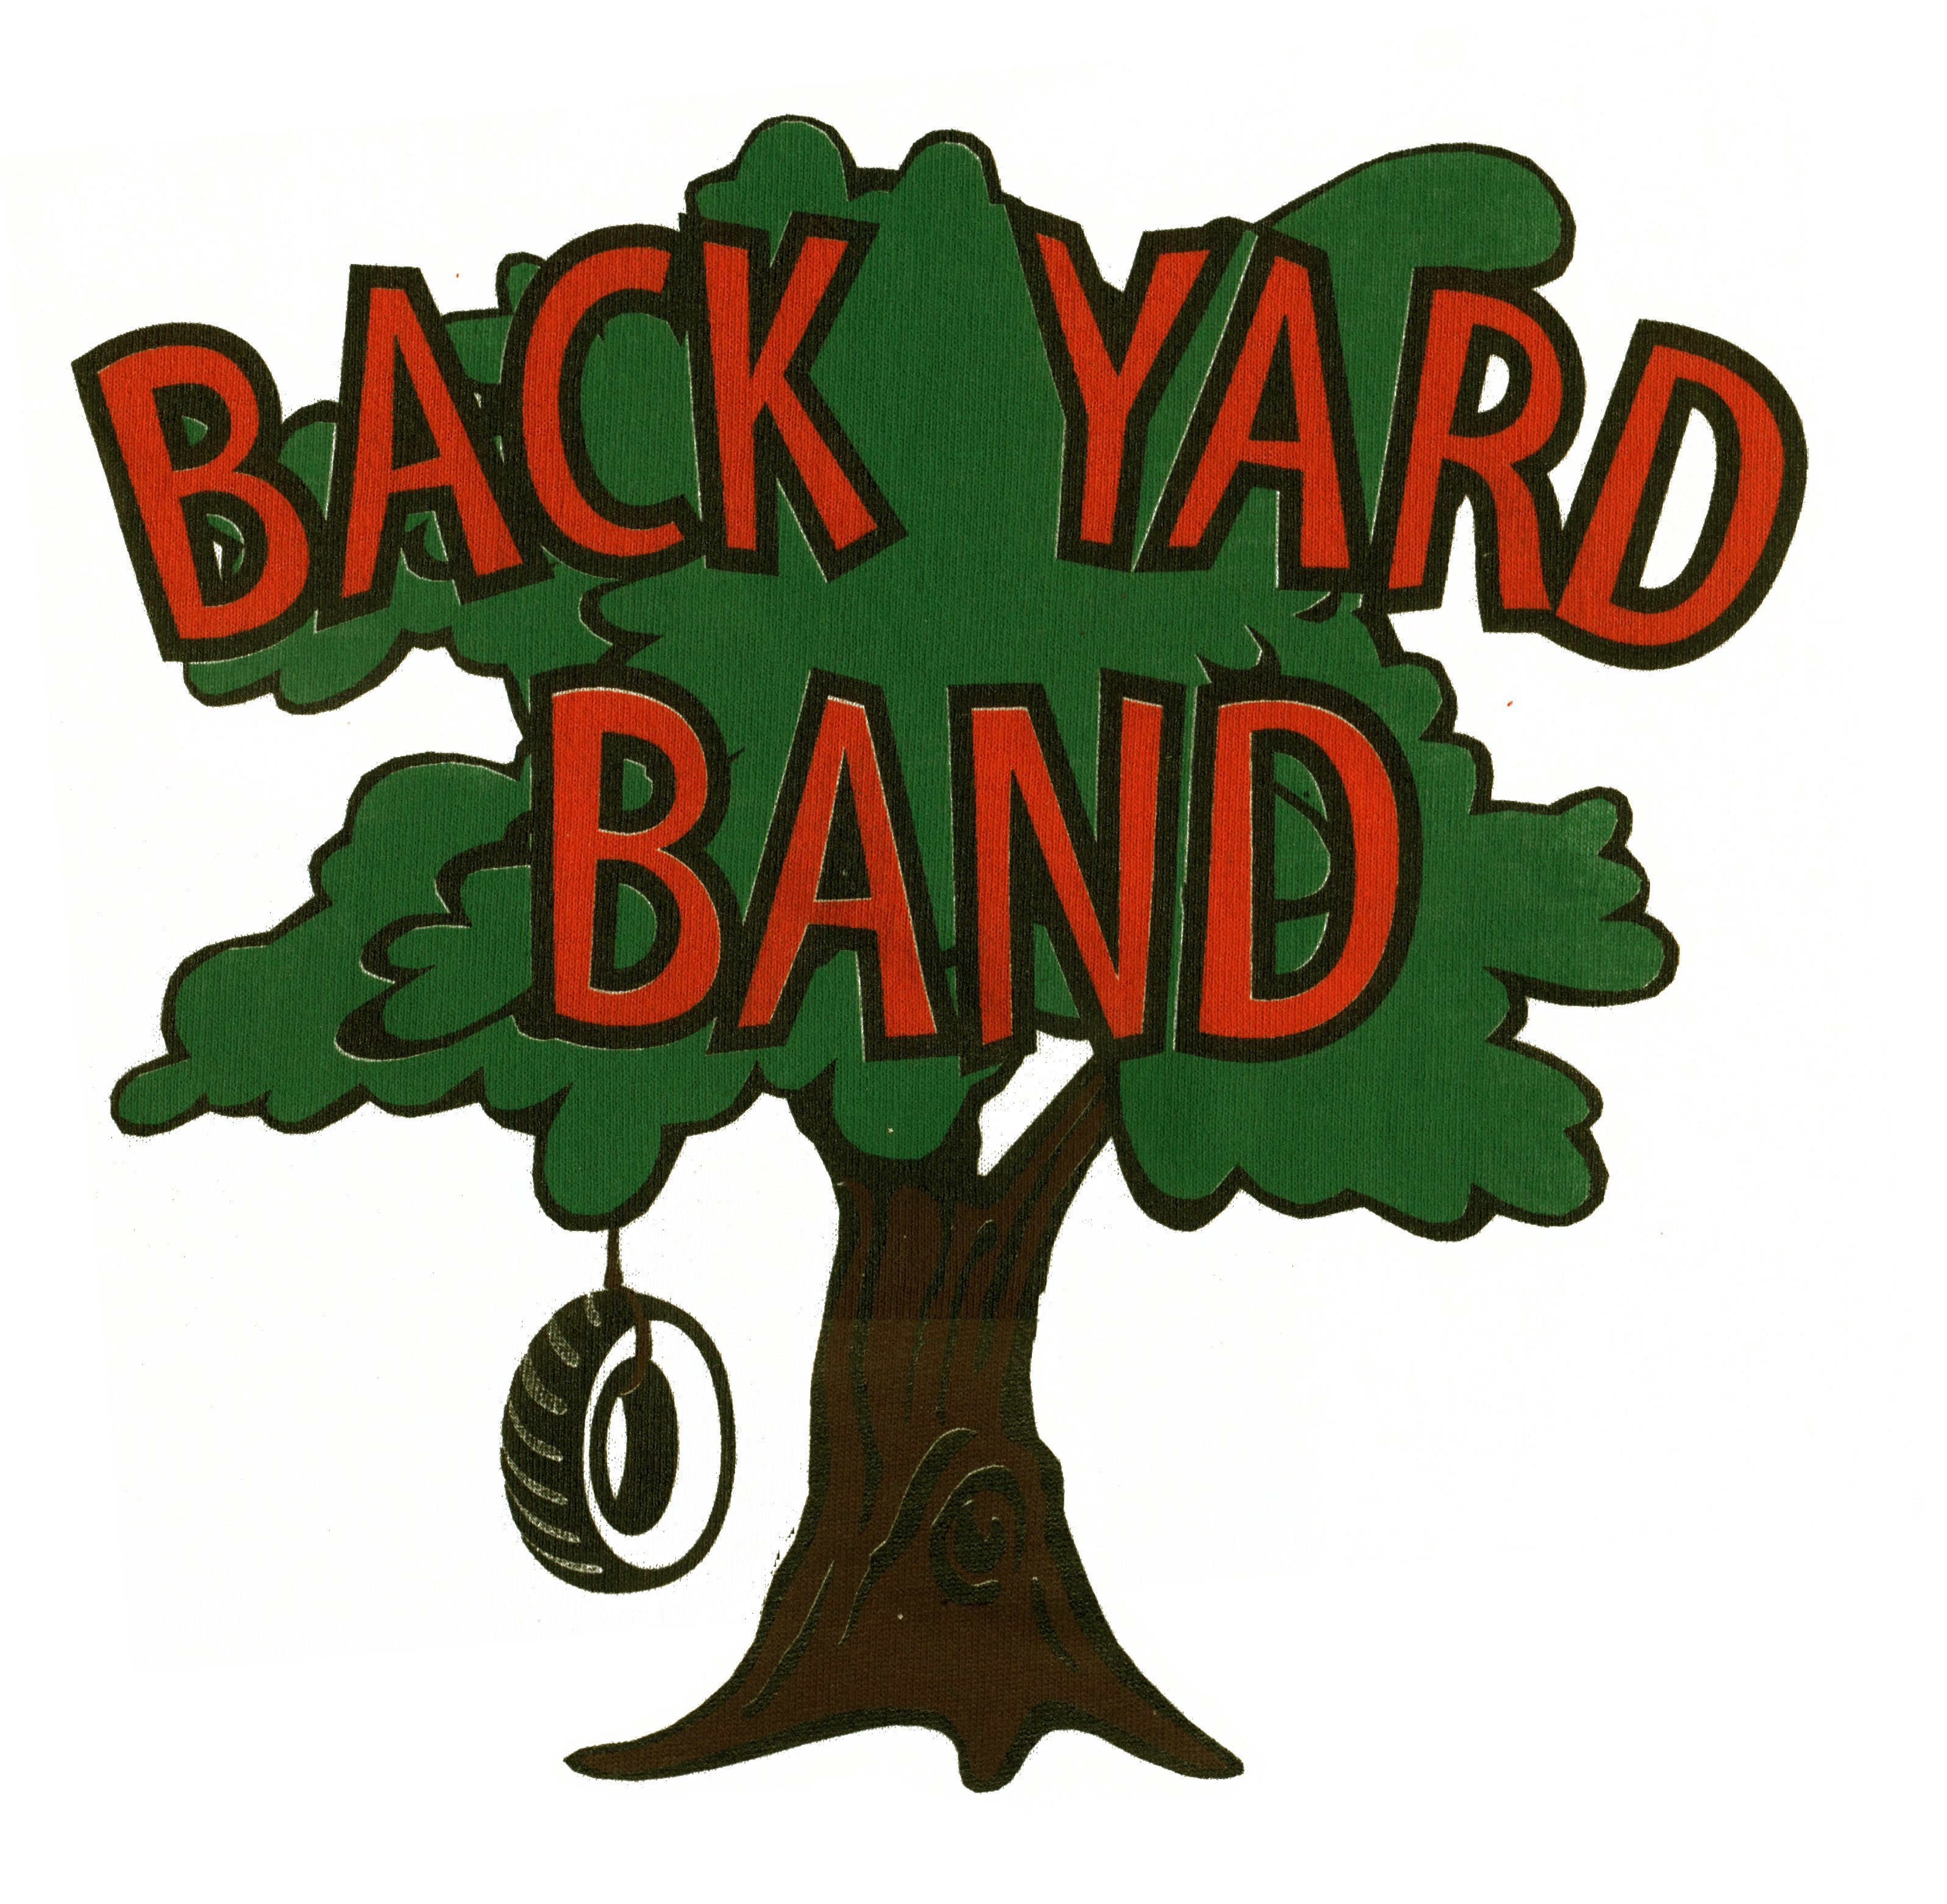 backyard band at fridays on the plaza march 17th the winter